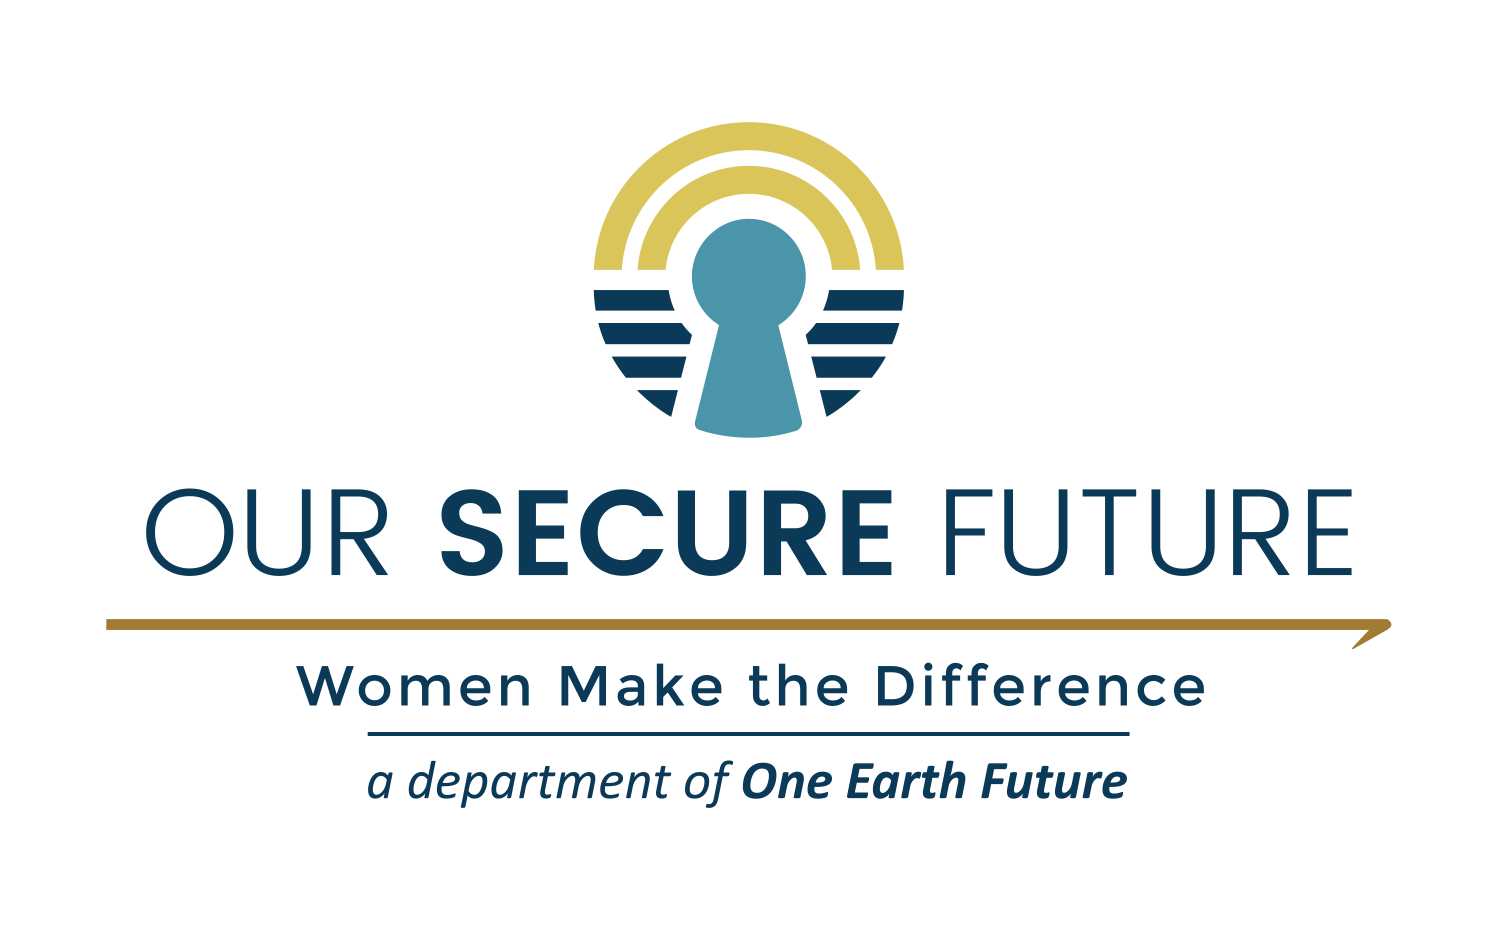 Our Secure Future